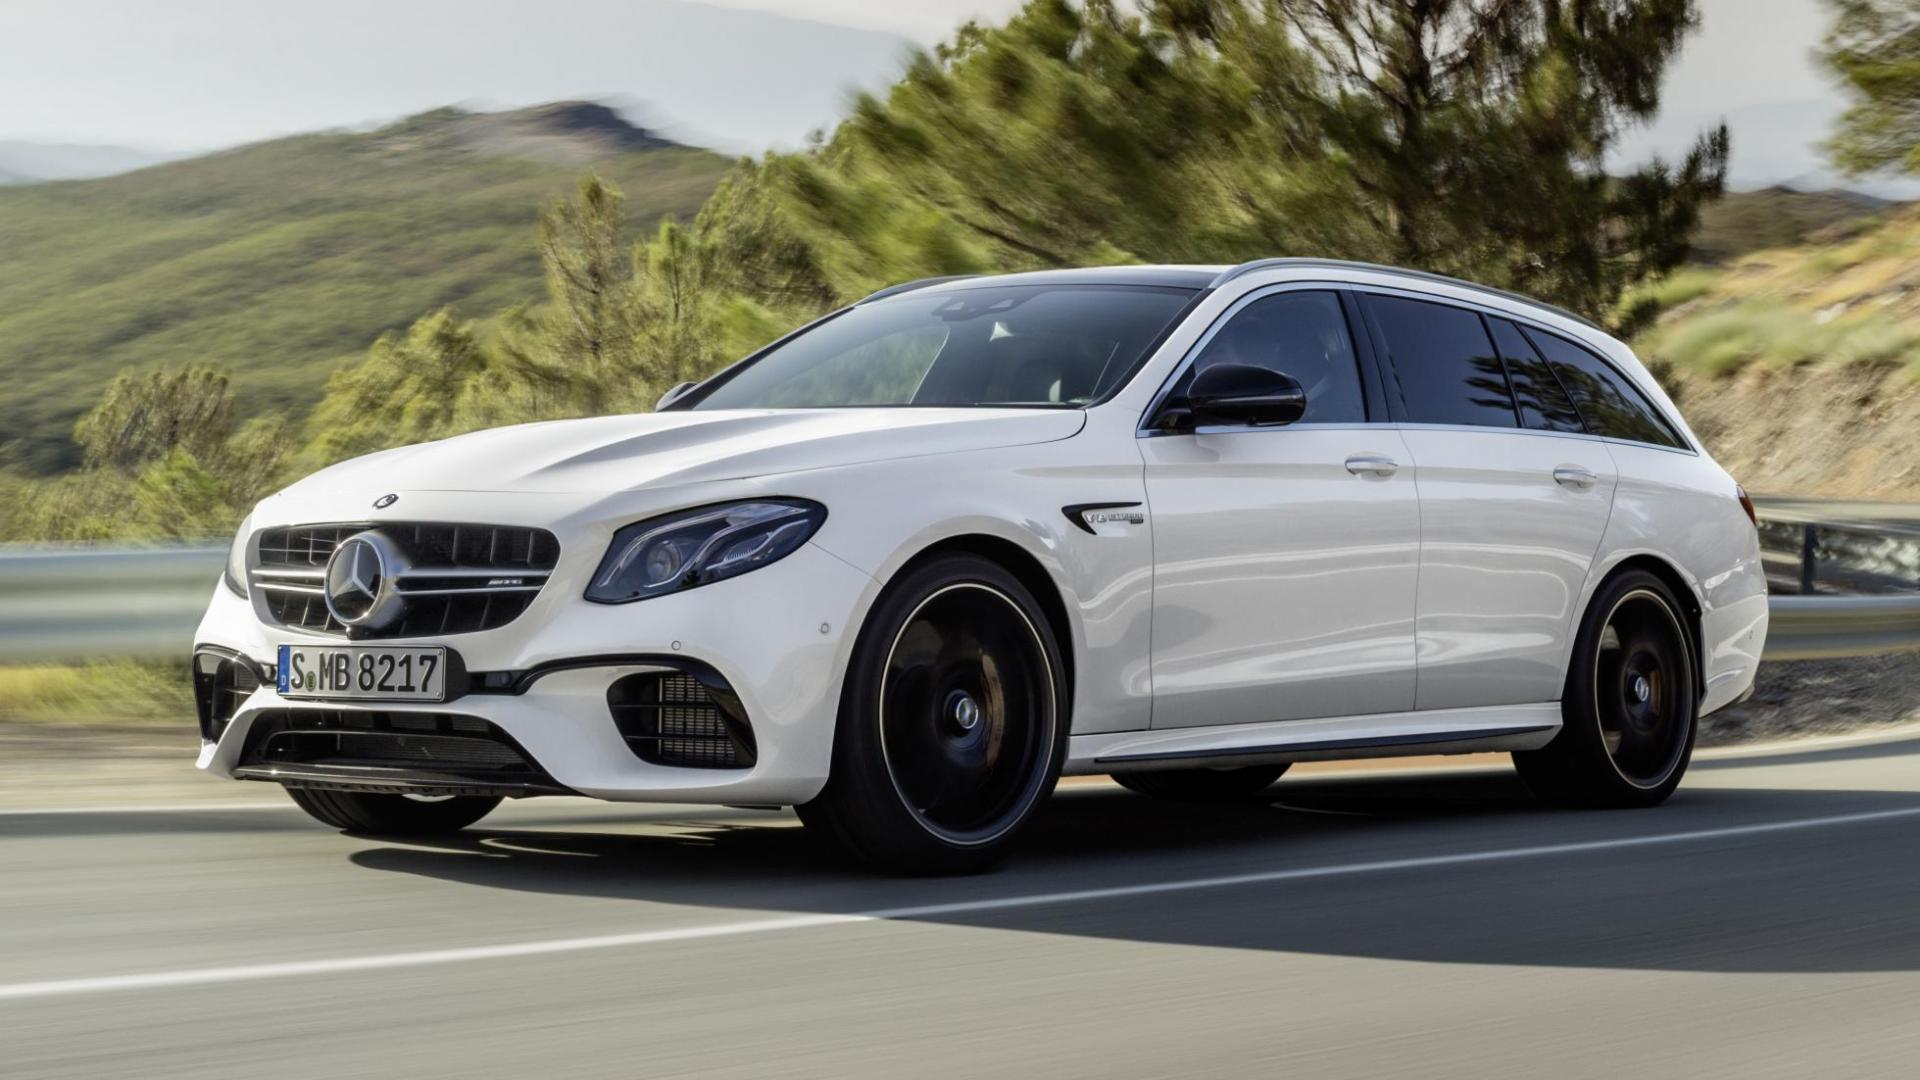 mercedes amg e 63 s is de snelste station ter wereld topgear. Black Bedroom Furniture Sets. Home Design Ideas